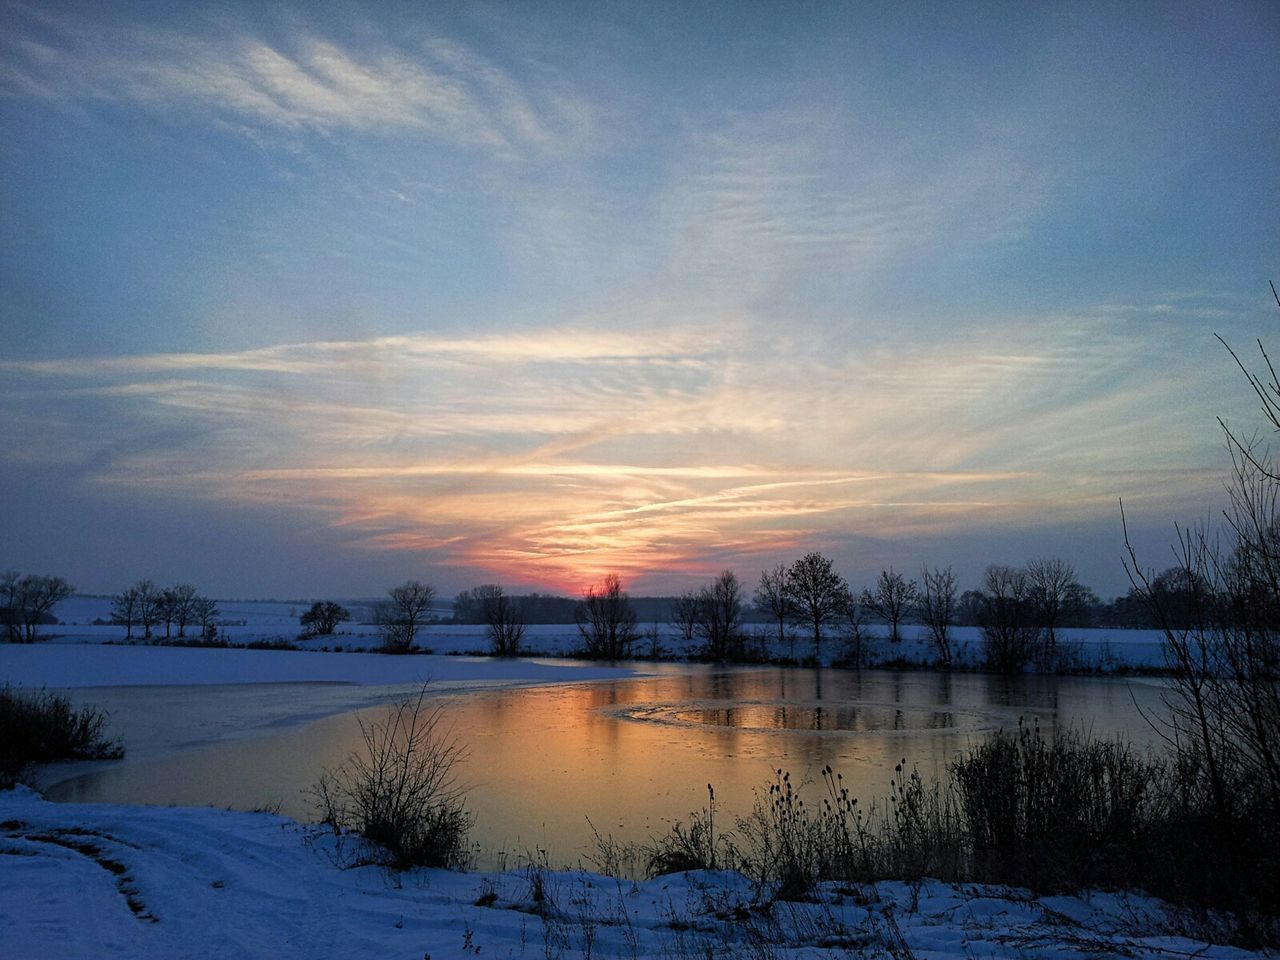 cold temperature, winter, nature, tranquil scene, beauty in nature, scenics, sunset, snow, tranquility, sky, no people, cloud - sky, lake, outdoors, water, tree, bare tree, landscape, day